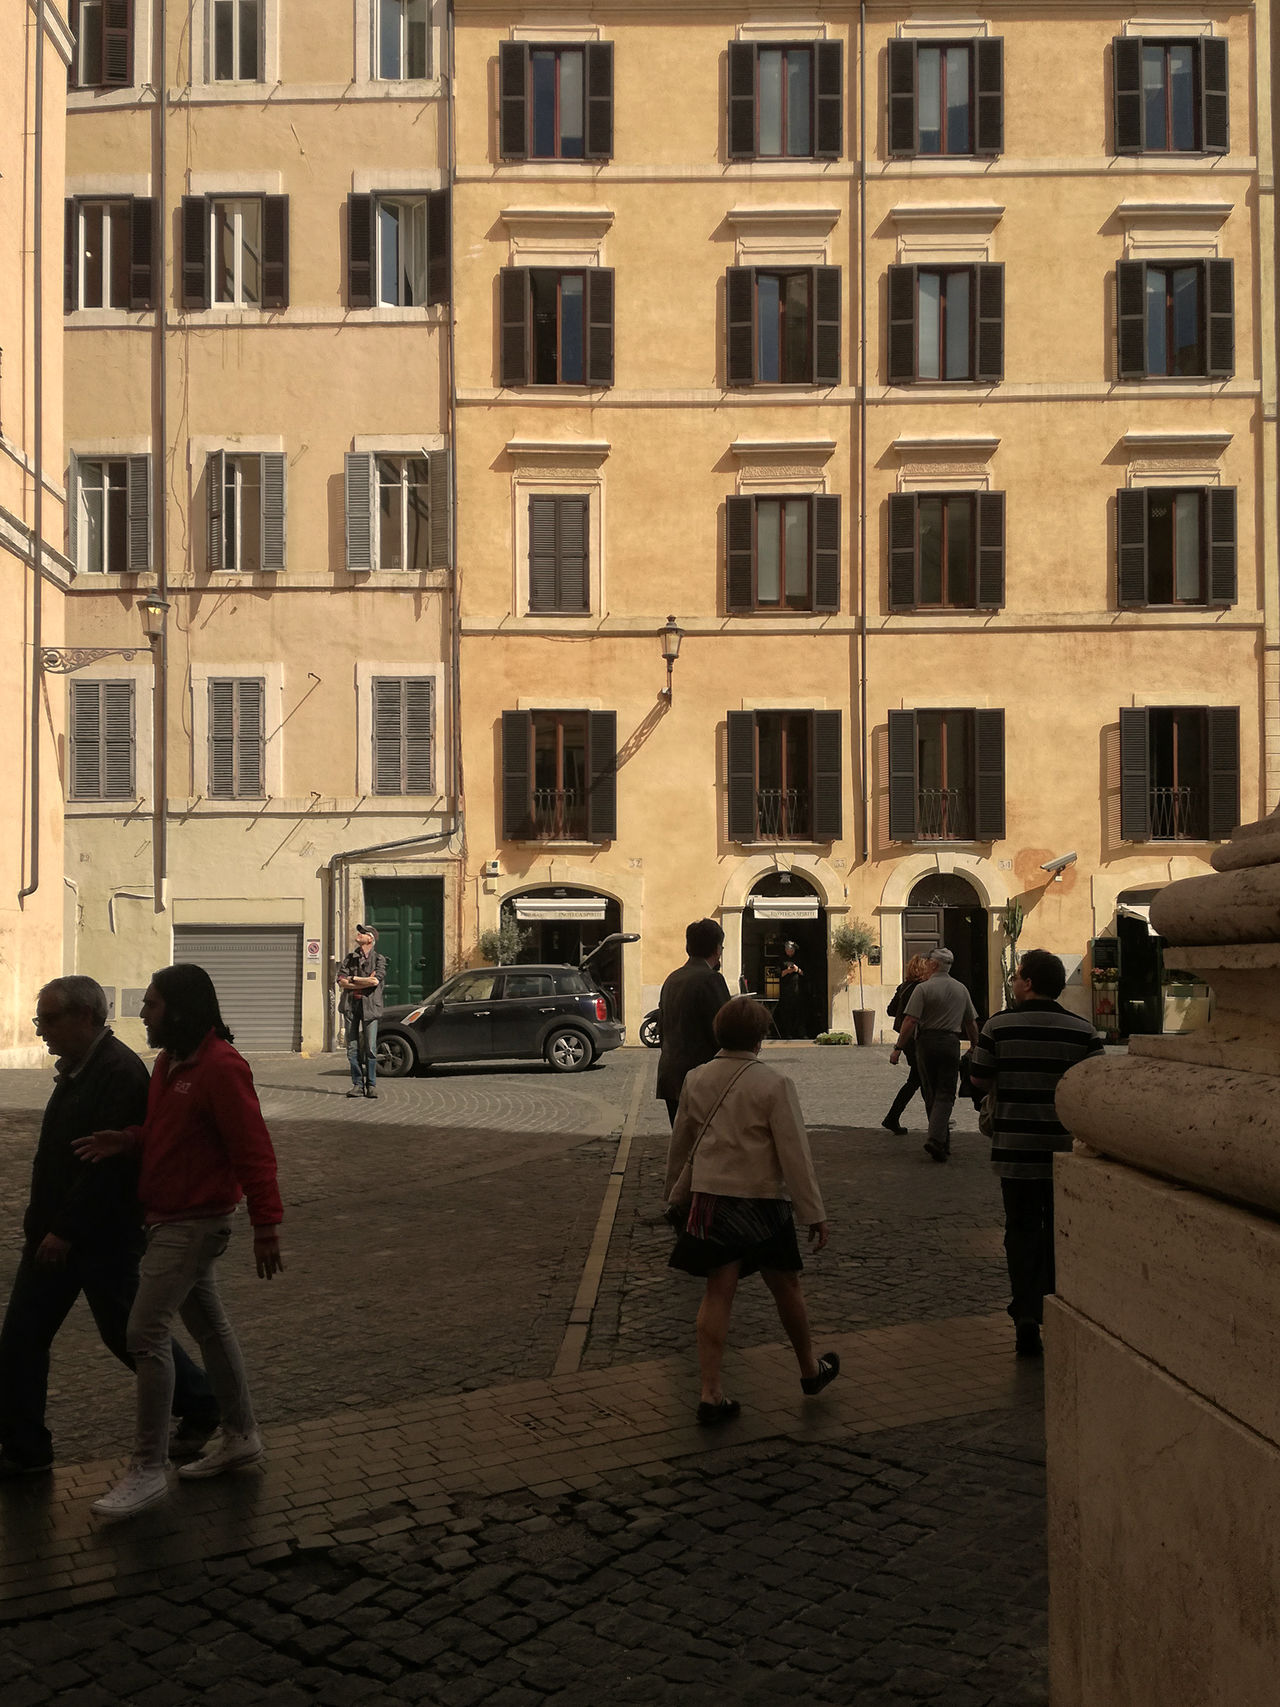 Adult Architecture Building Exterior Built Structure City Day Large Group Of People Leisure Activity Lifestyles Men Outdoors People Piazza Di Pietra Real People Street Walking Women